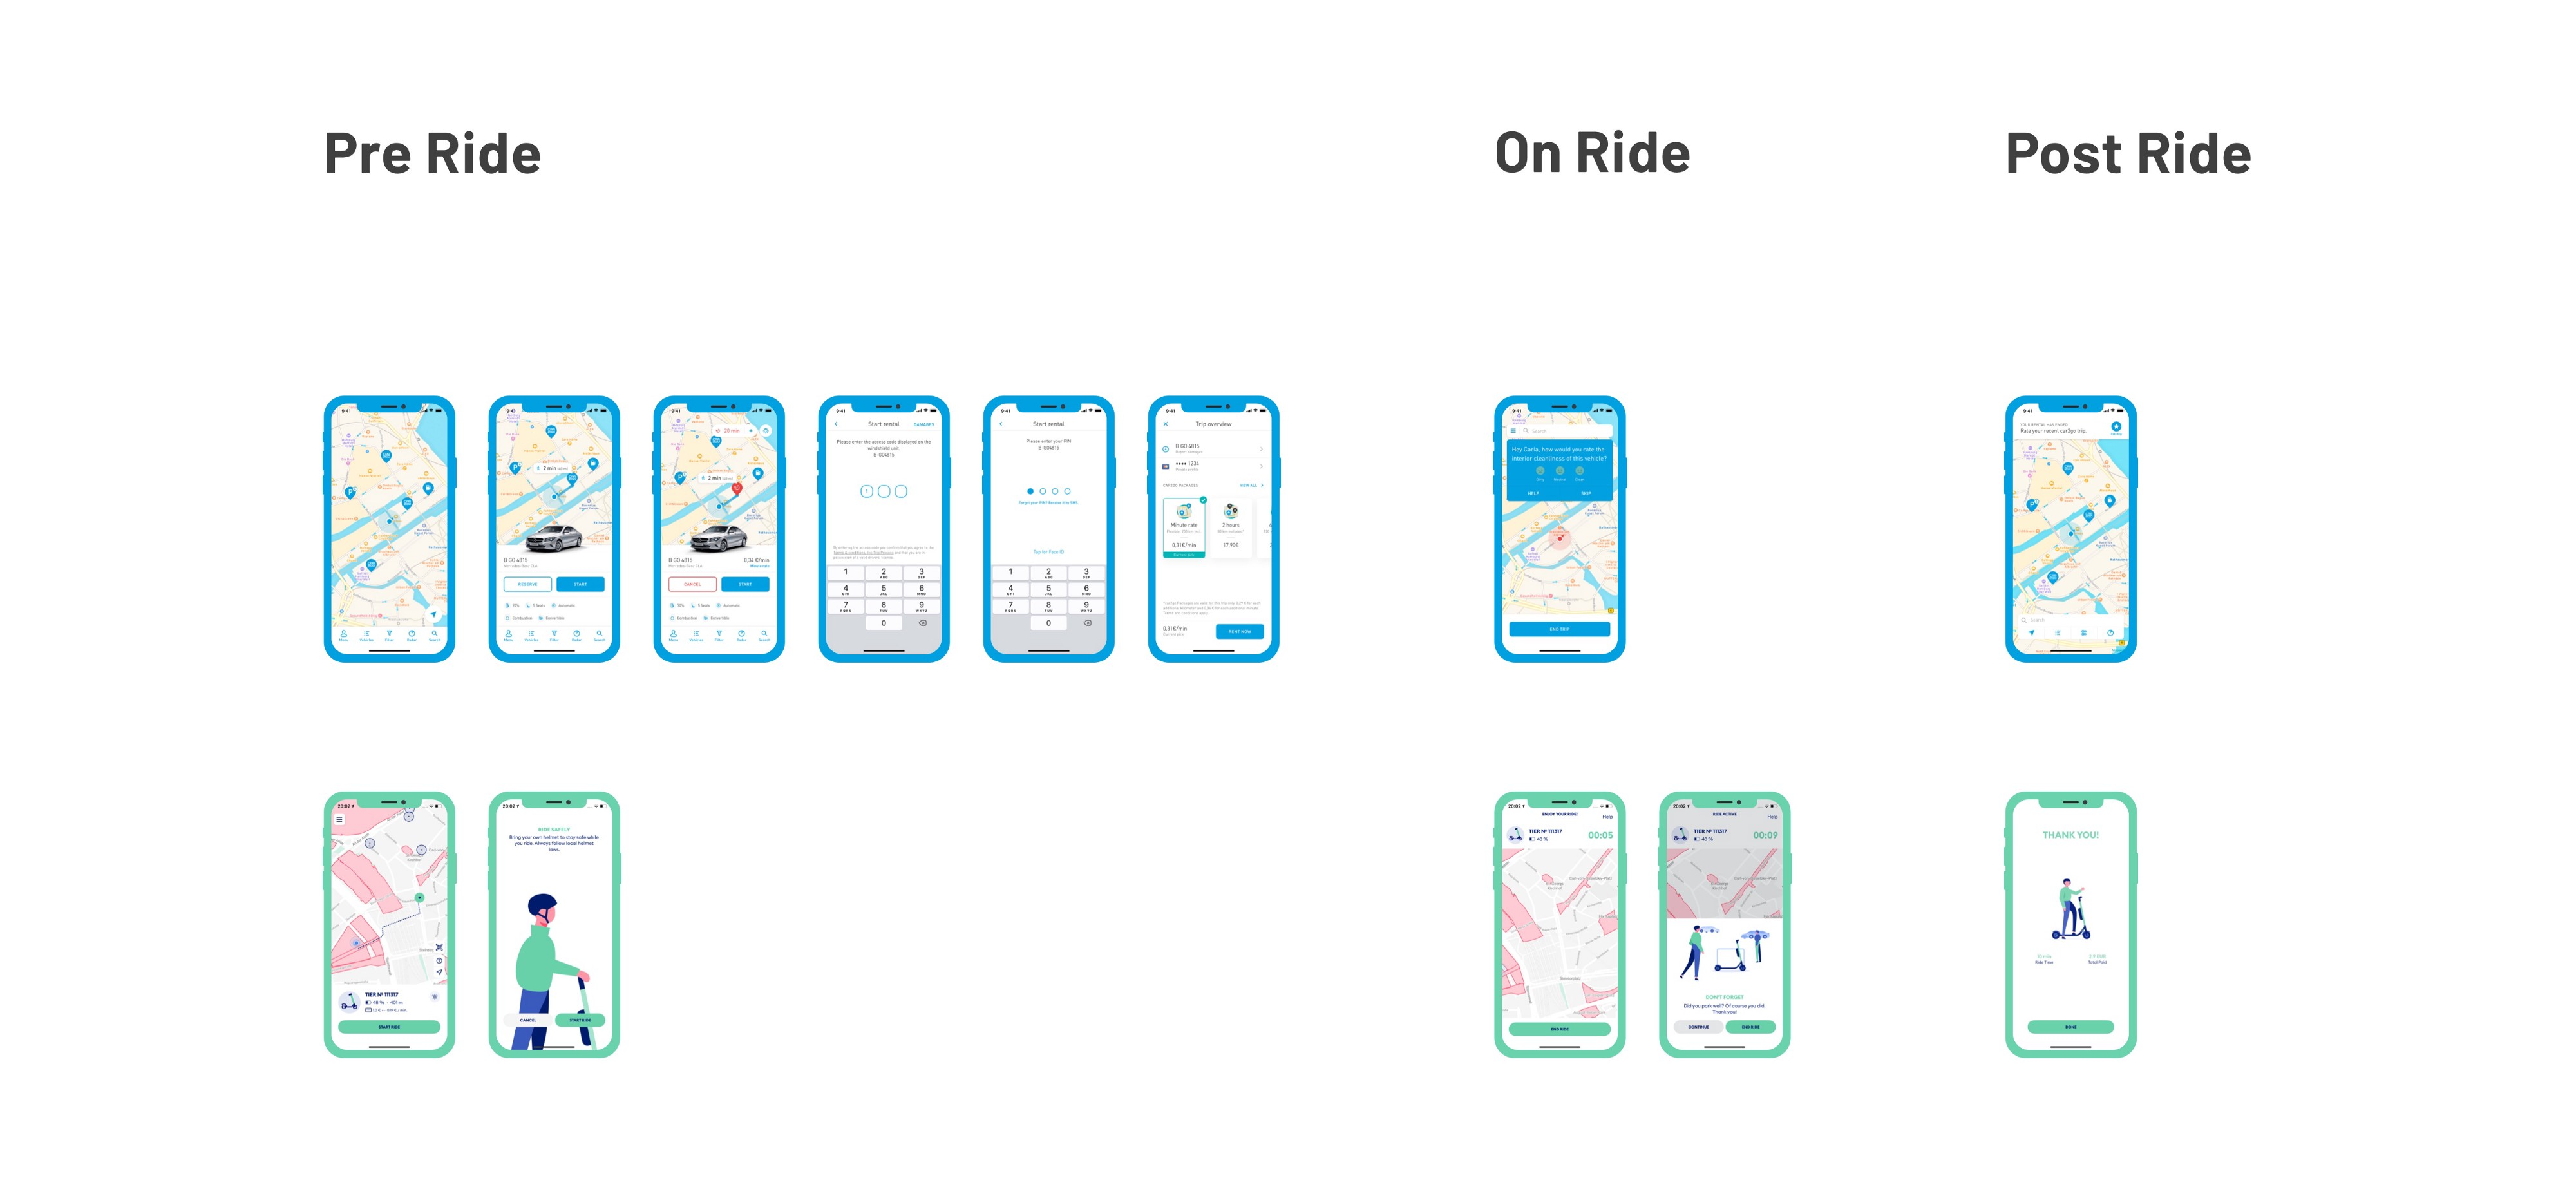 Rearrangement of the rental flow screens into the three categories Pre-, On- and Post-Ride.